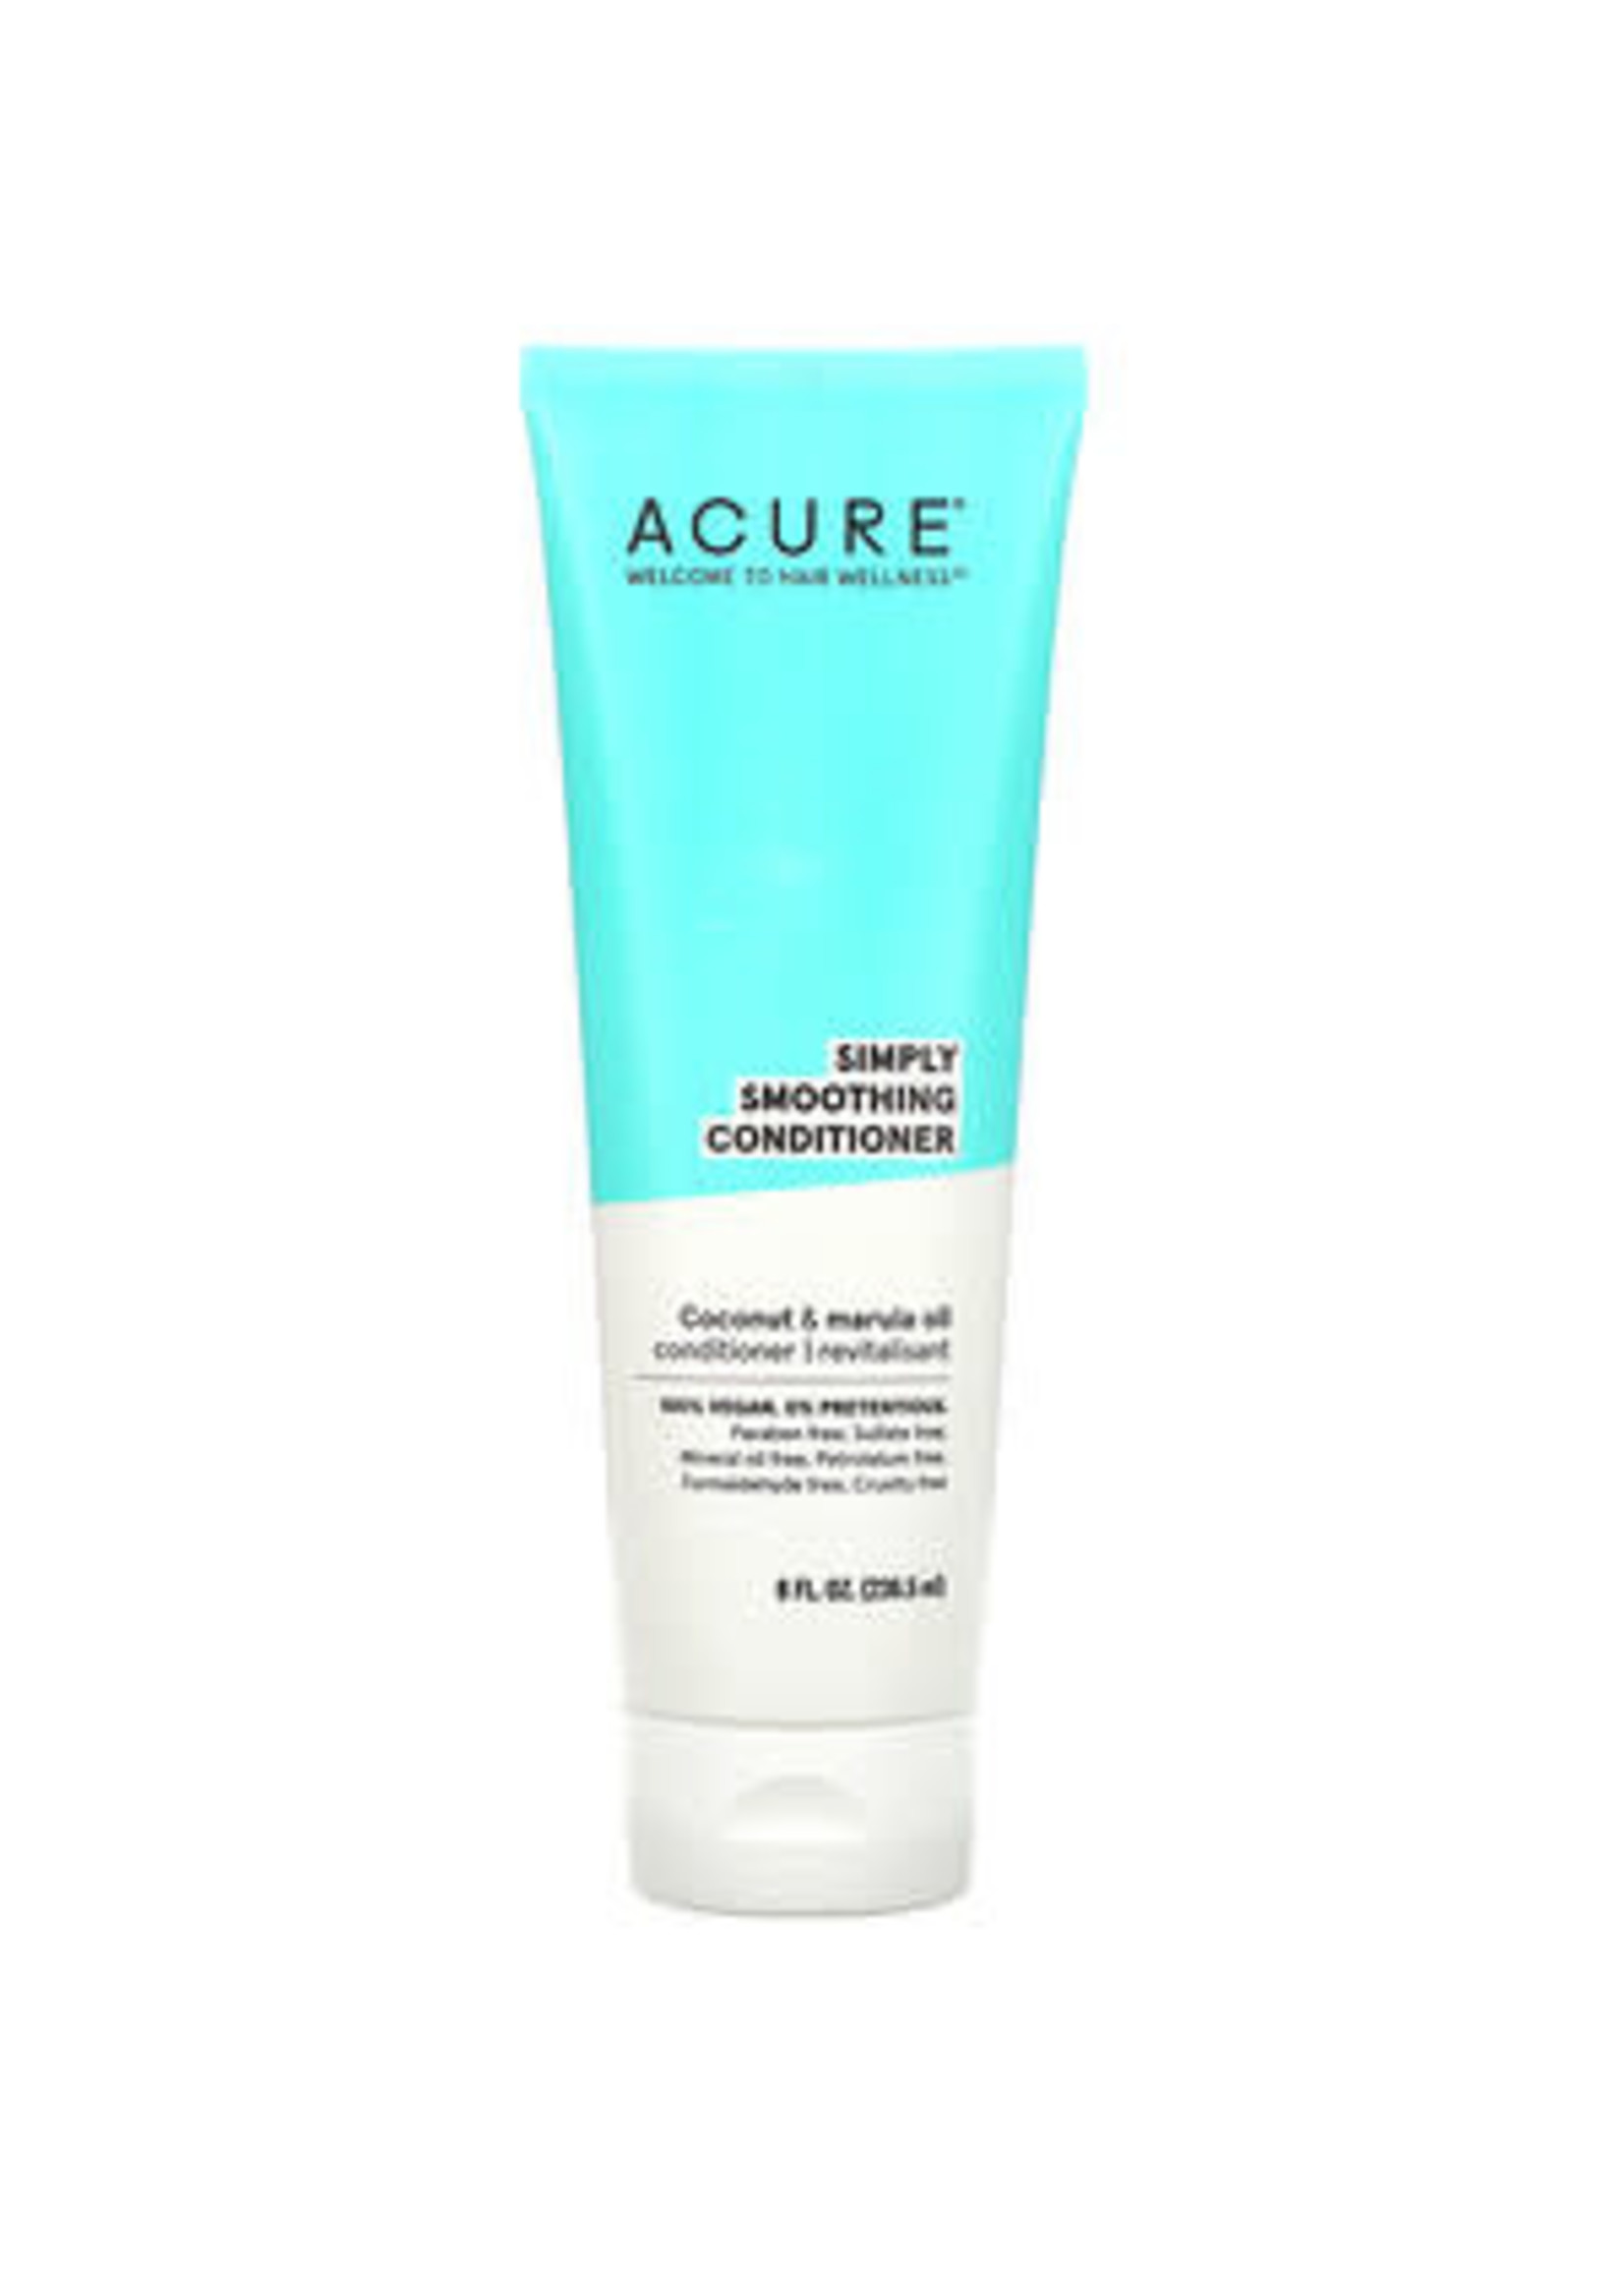 Acure Acure Simply Smoothing Conditioner Coconut & Marula Oil 236mls